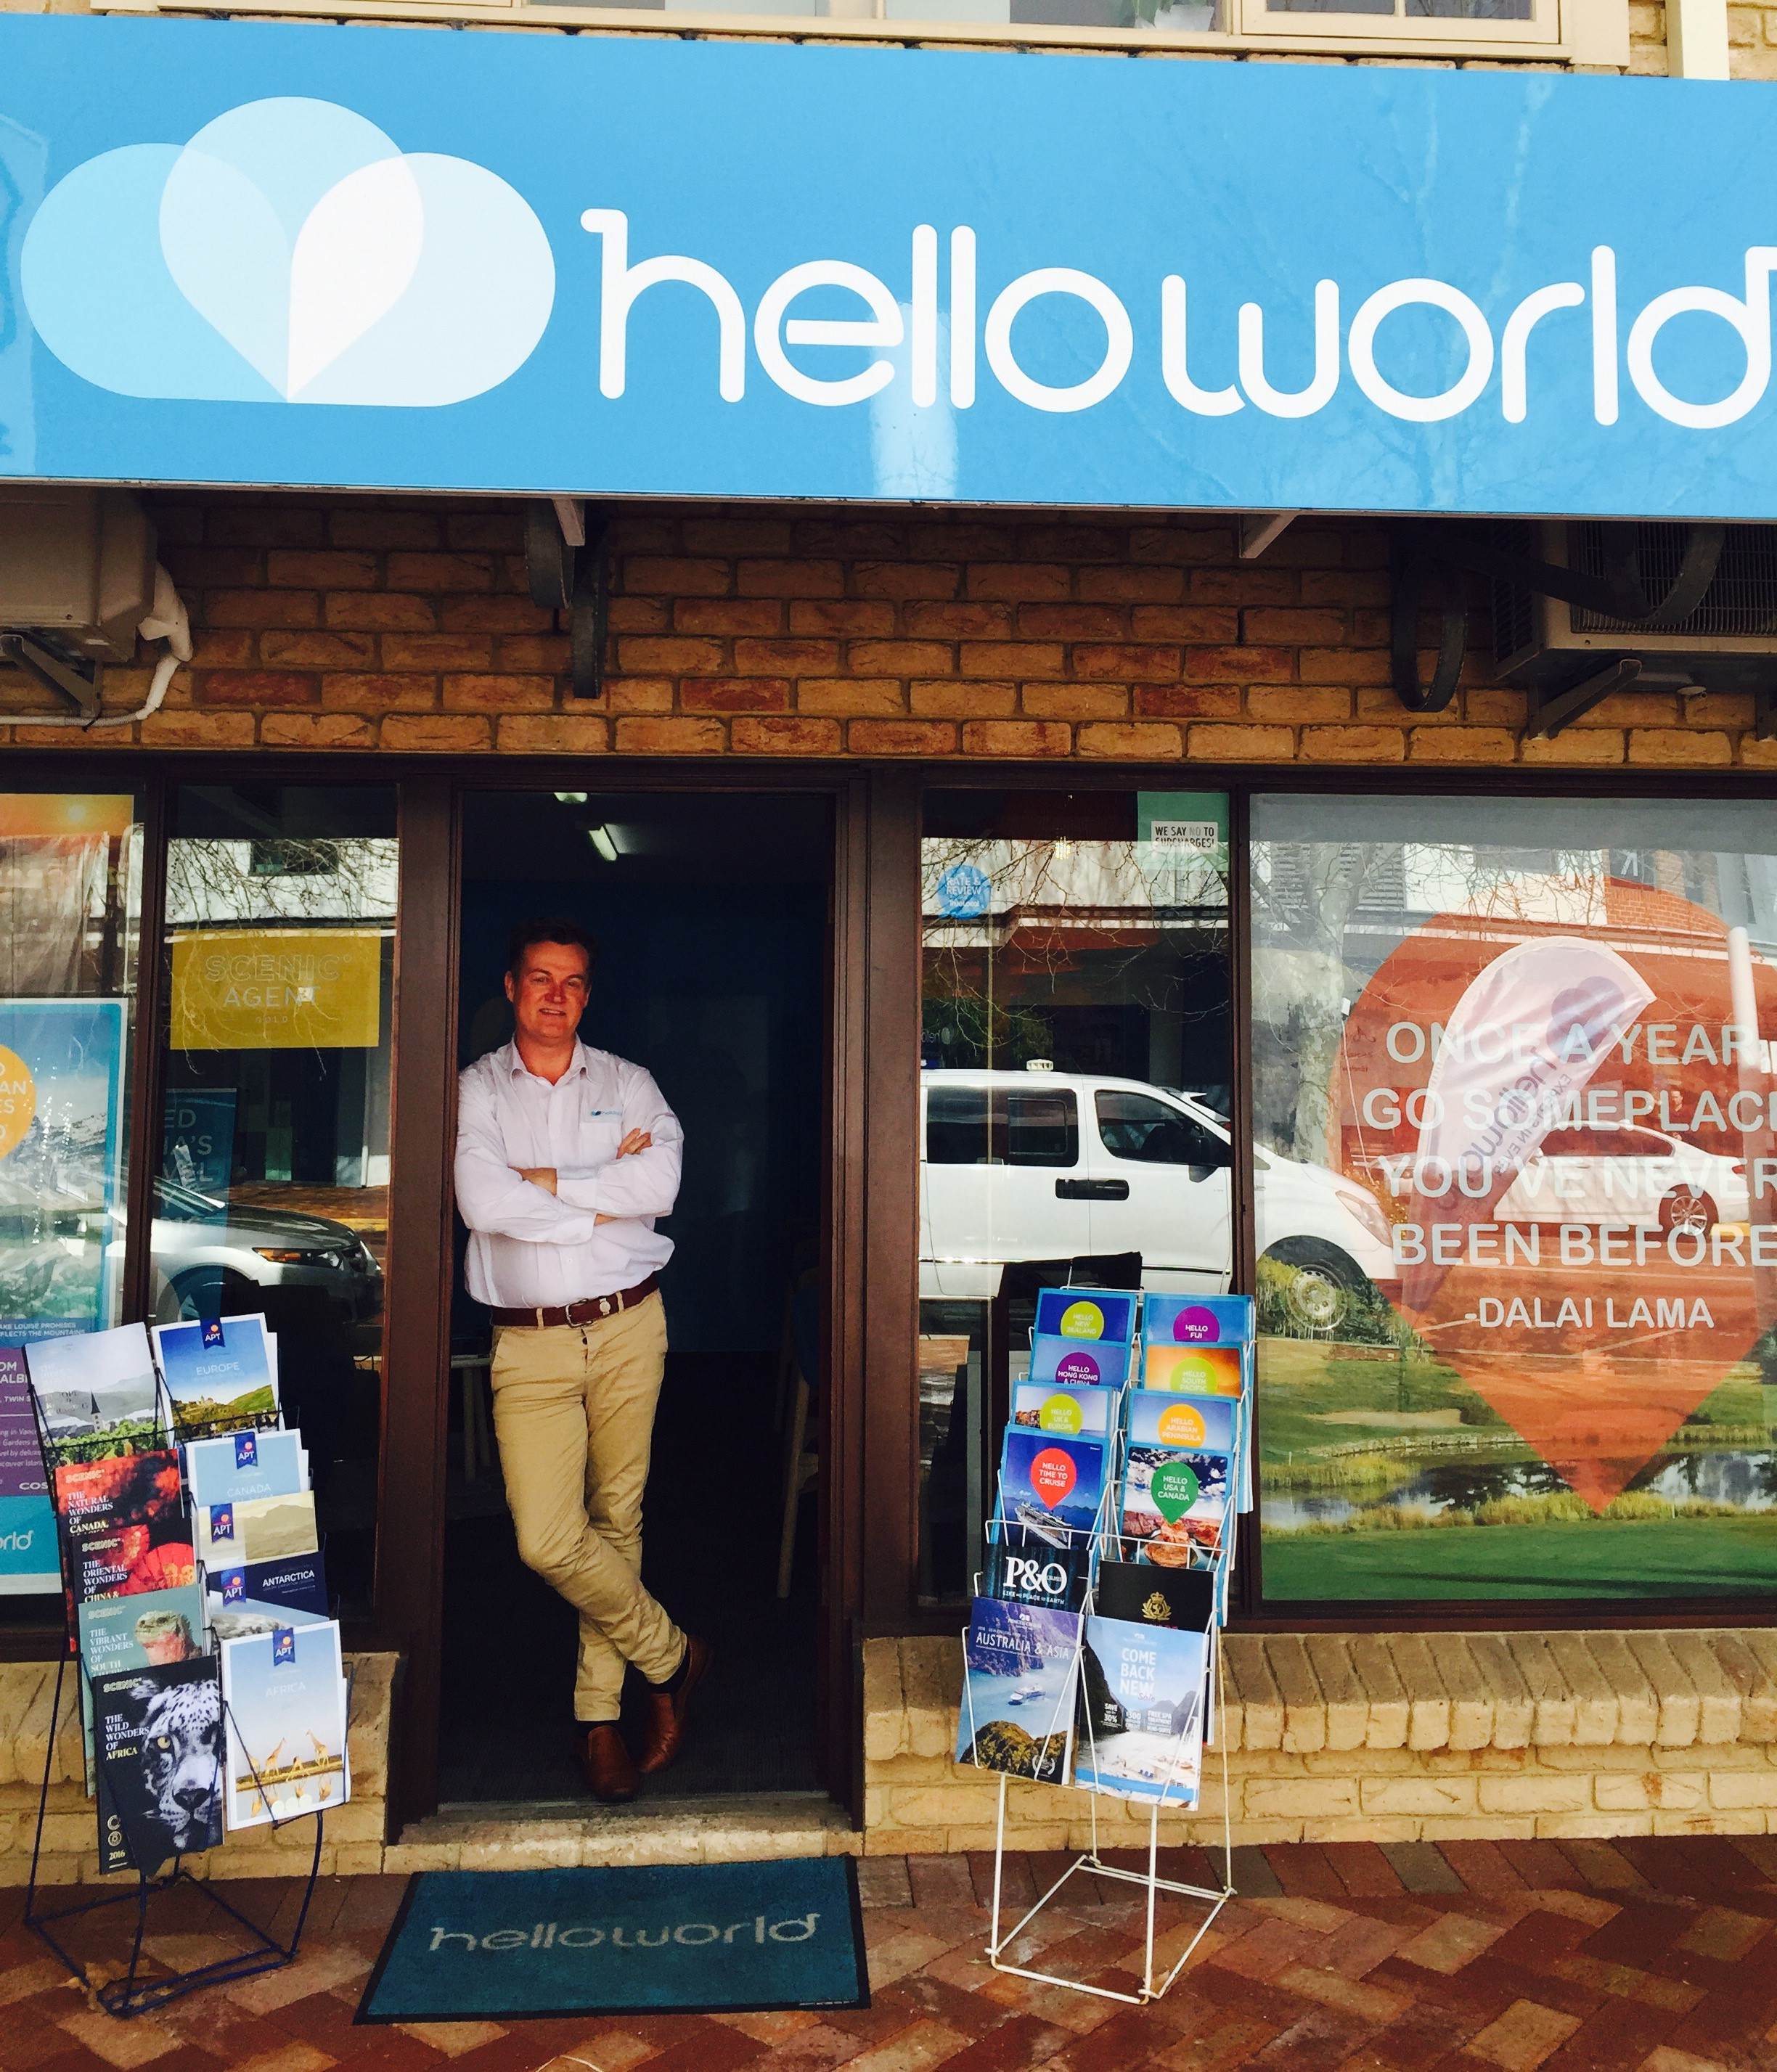 Helloworld Australia: Industry Insider: Helloworld 2 Years On With David From